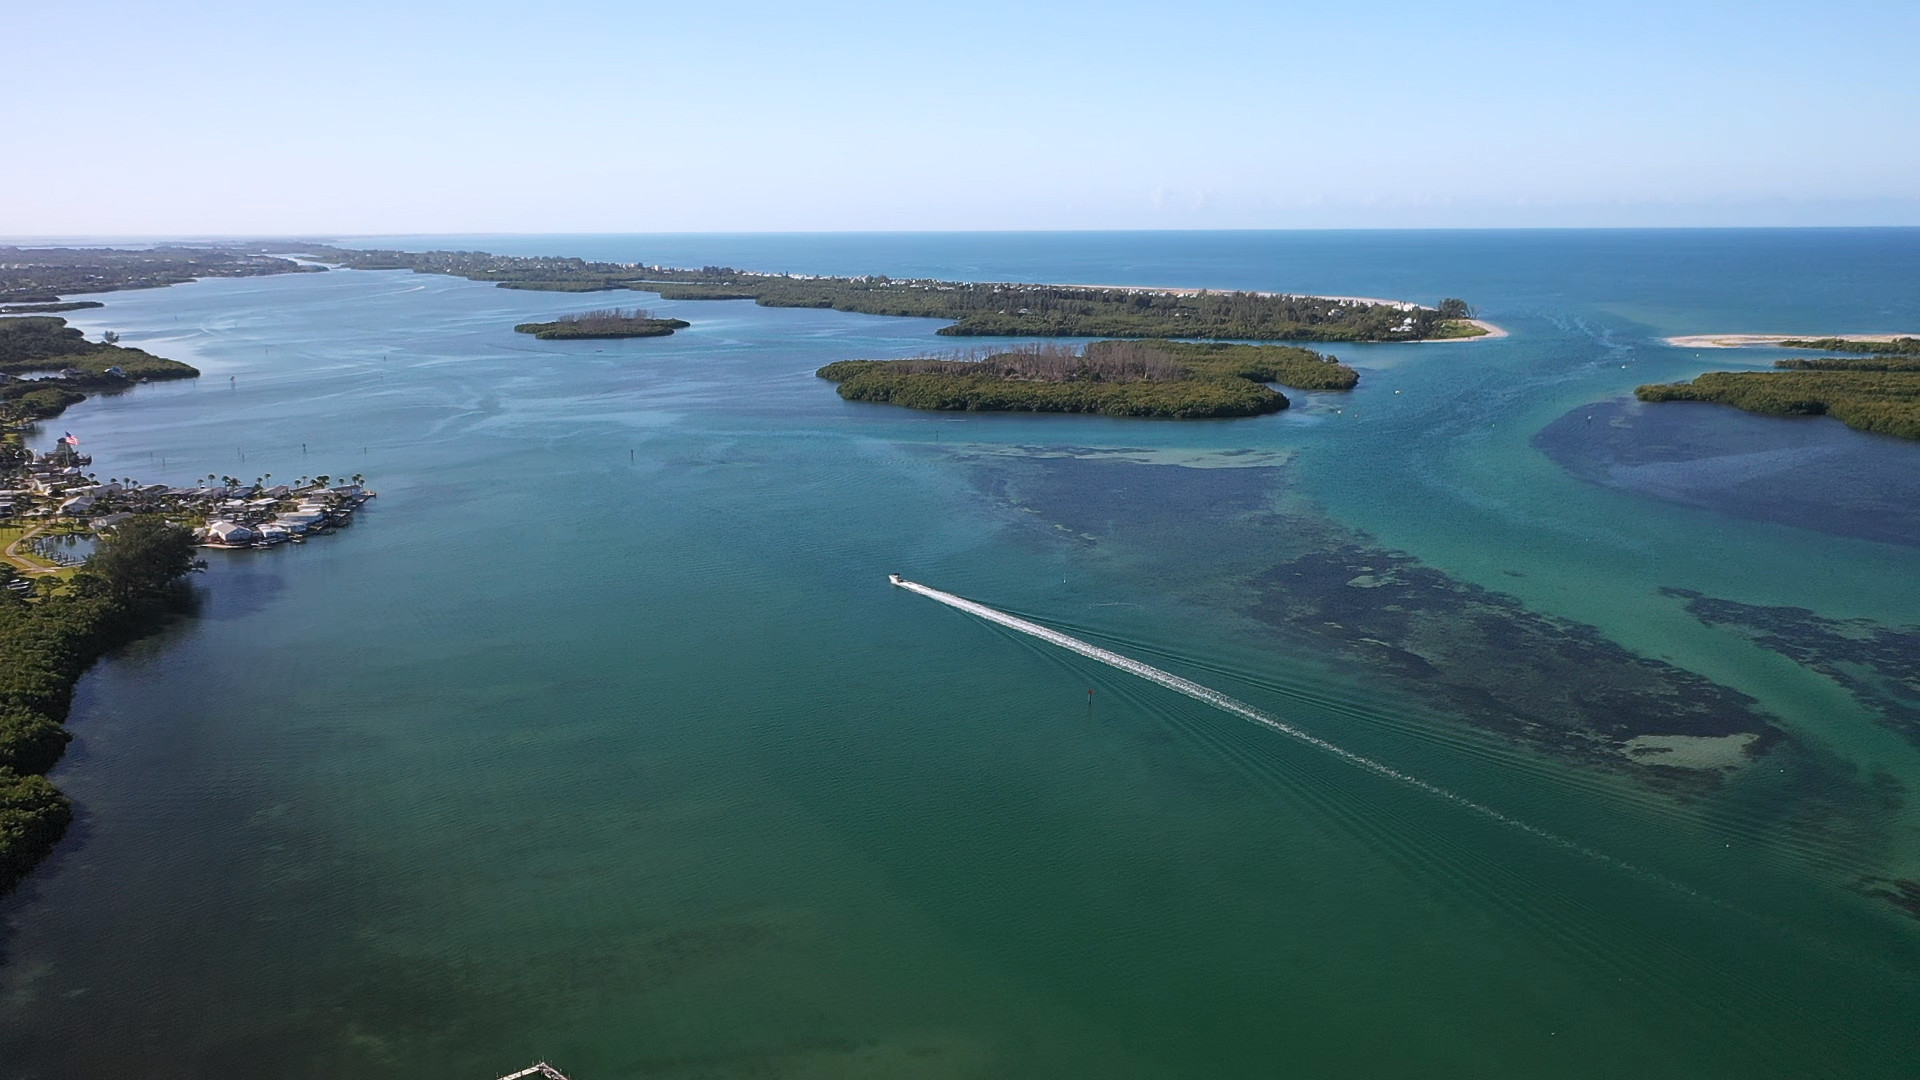 Lemon Bay and Stump Pass